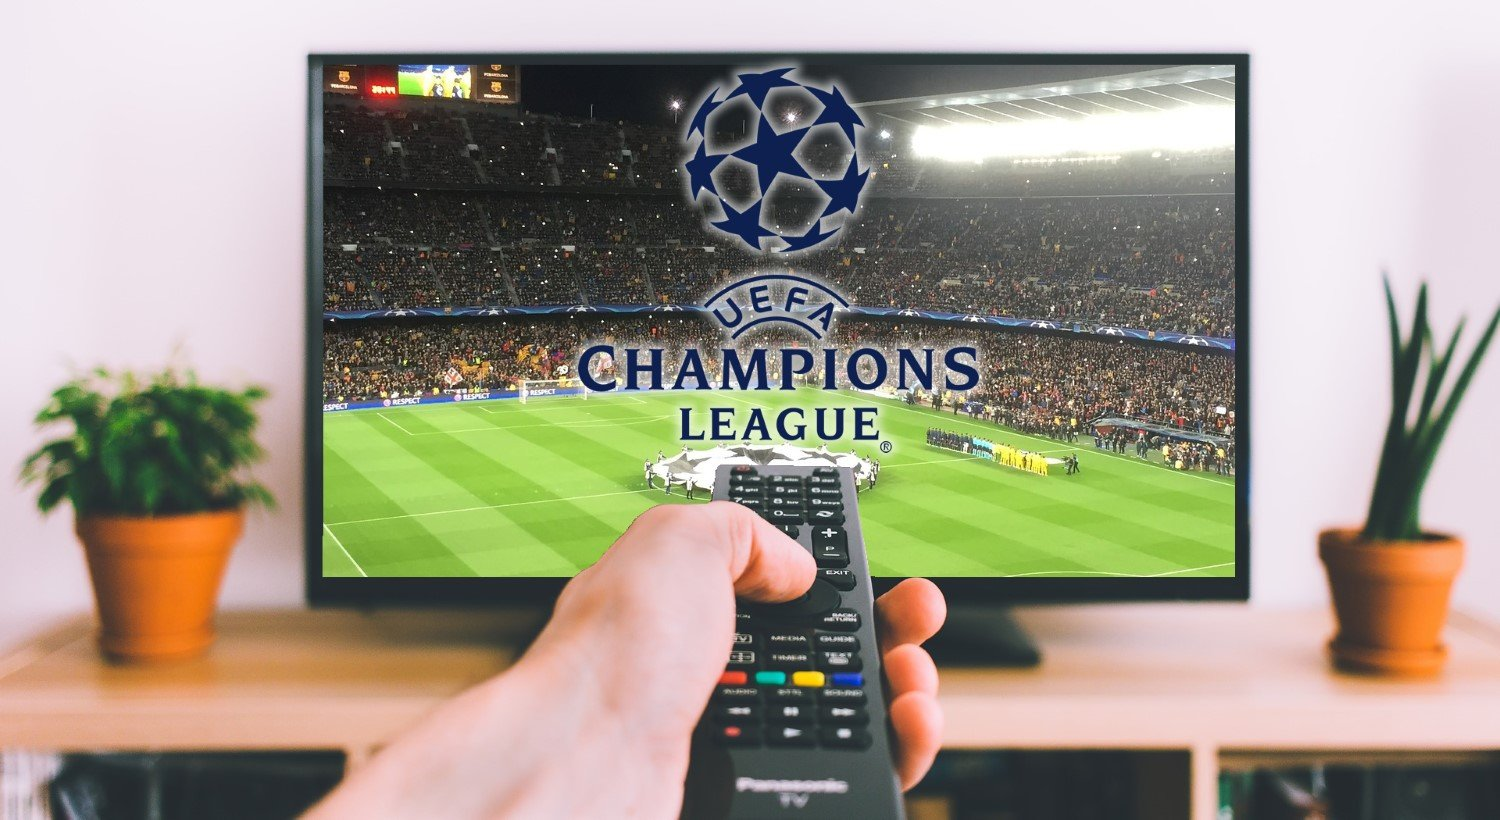 Champions League TV Guide Streaming